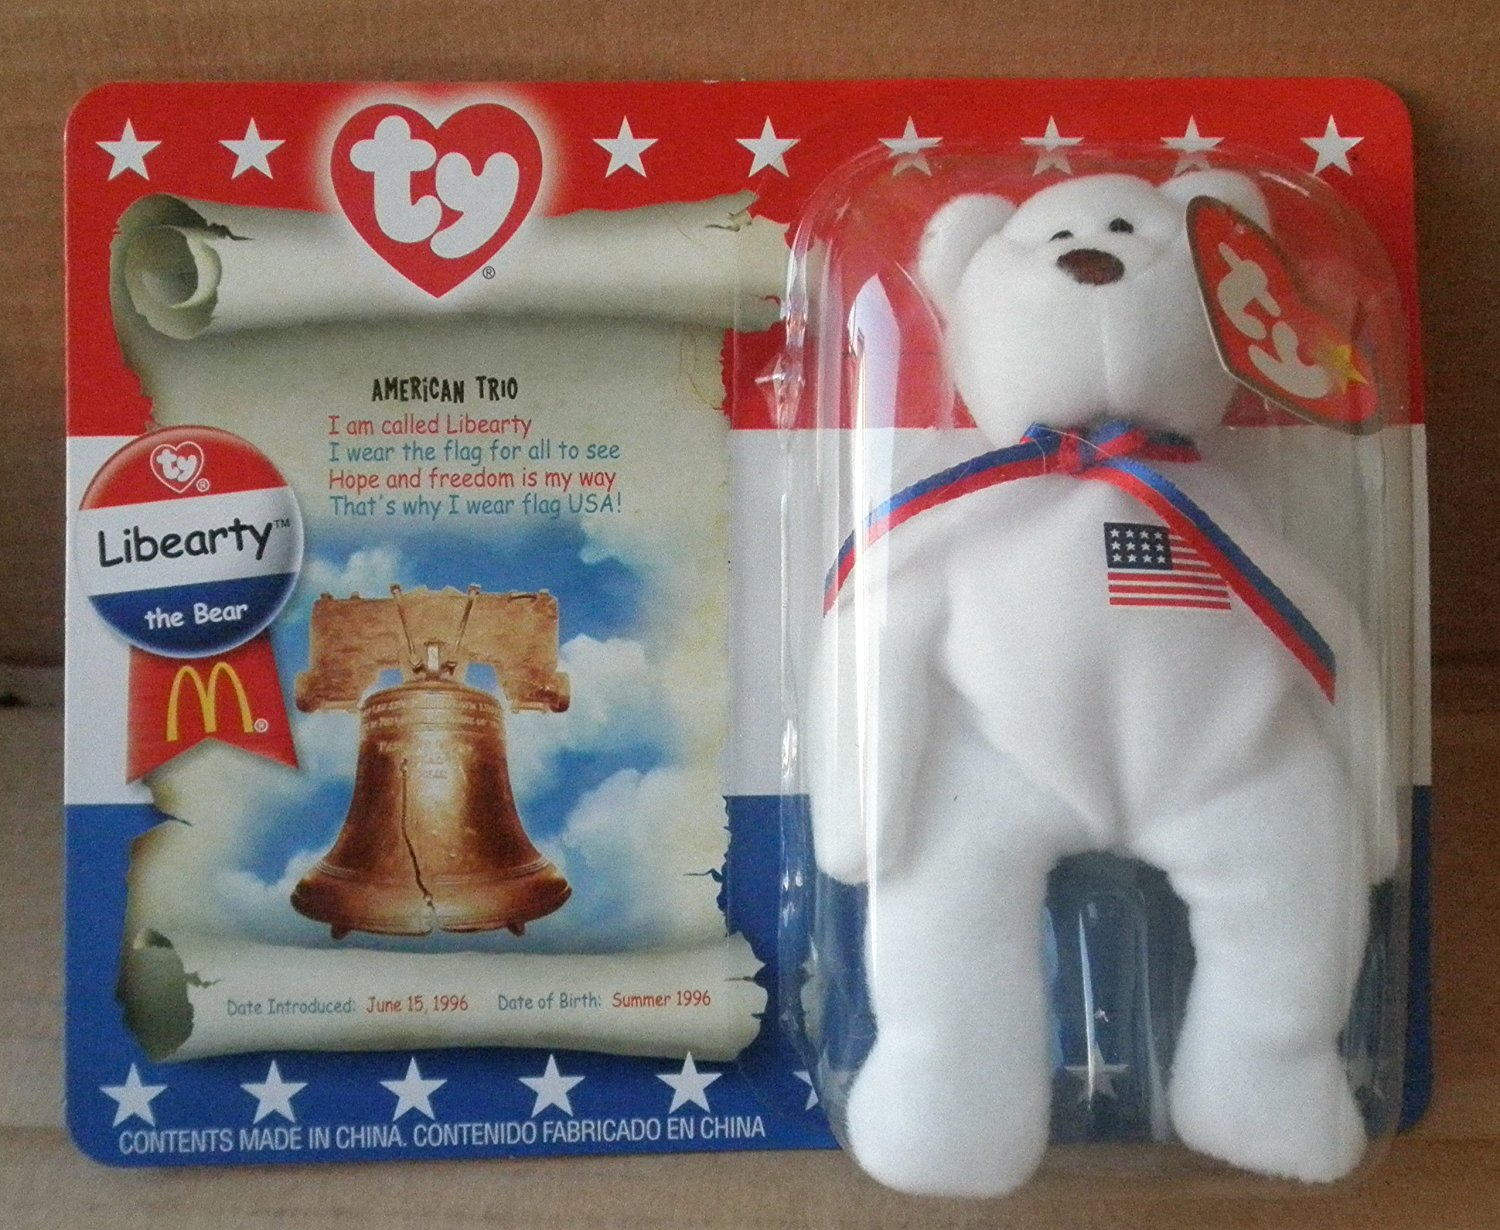 a01a9e22597 Get Quotations · McDonalds TY Beanie Babies Libearty Teddy Bear Stuffed  Animal Plush Toy - 5 inches tall -